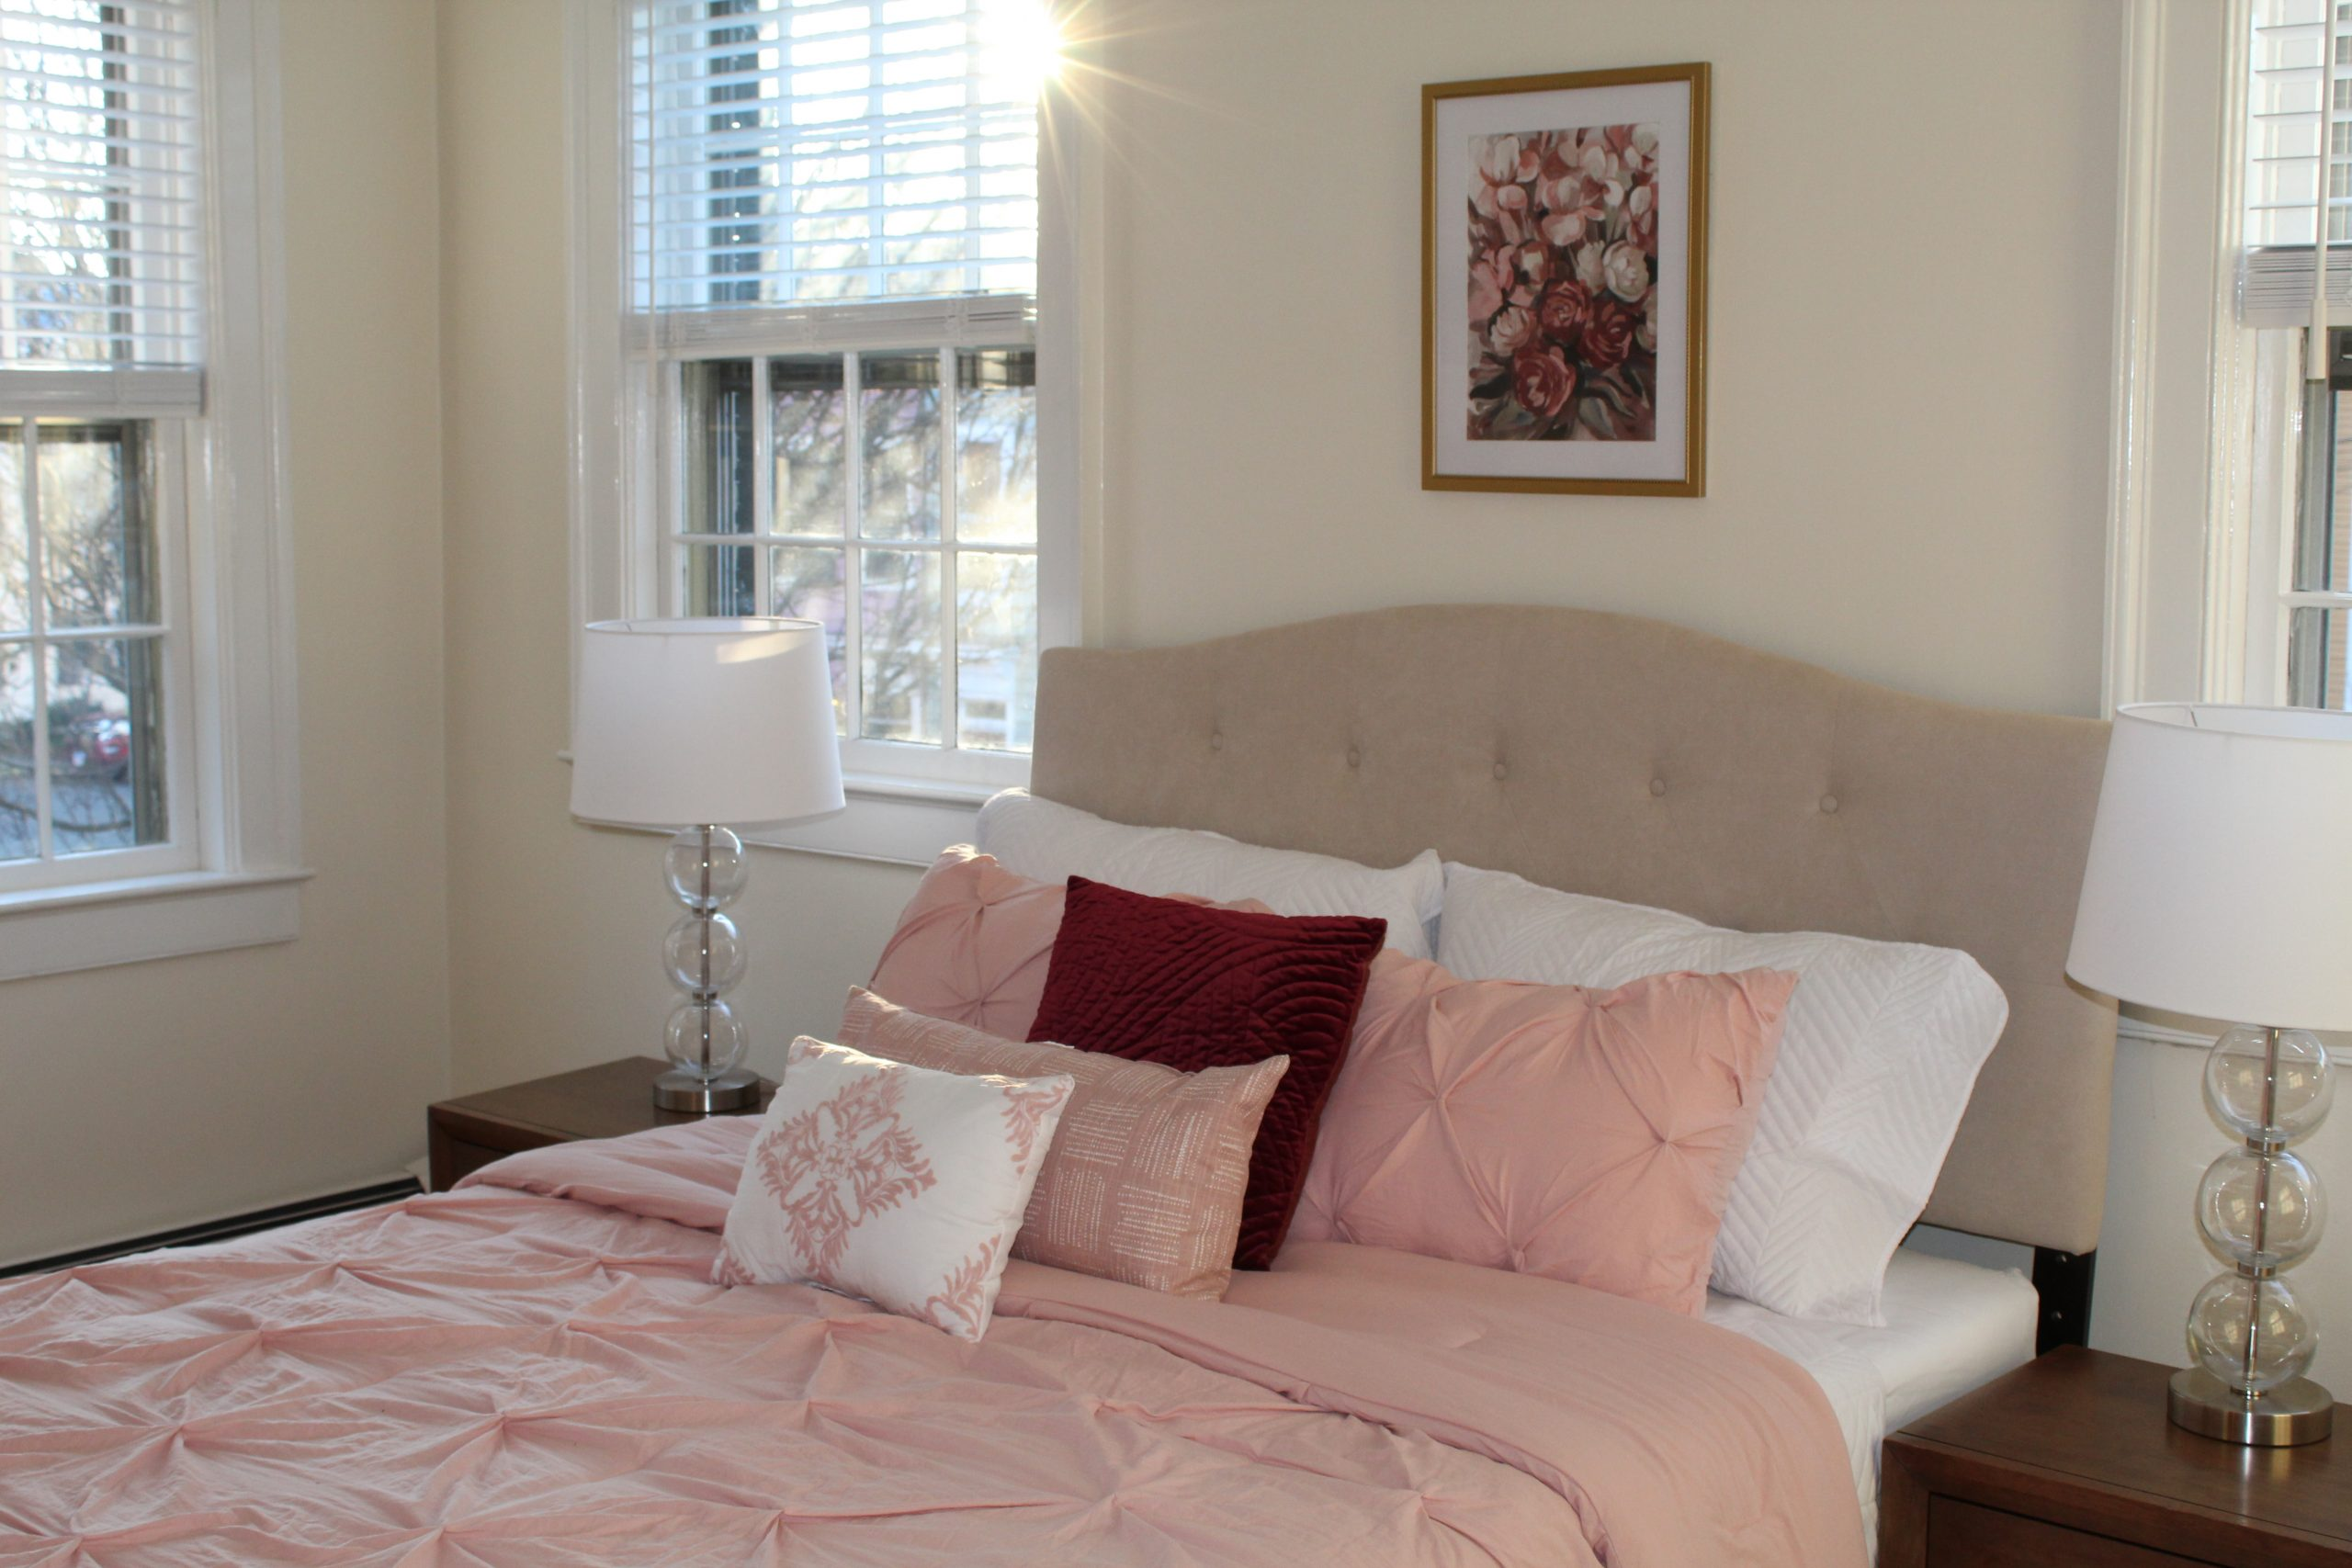 Bedroom of lovely historic row home